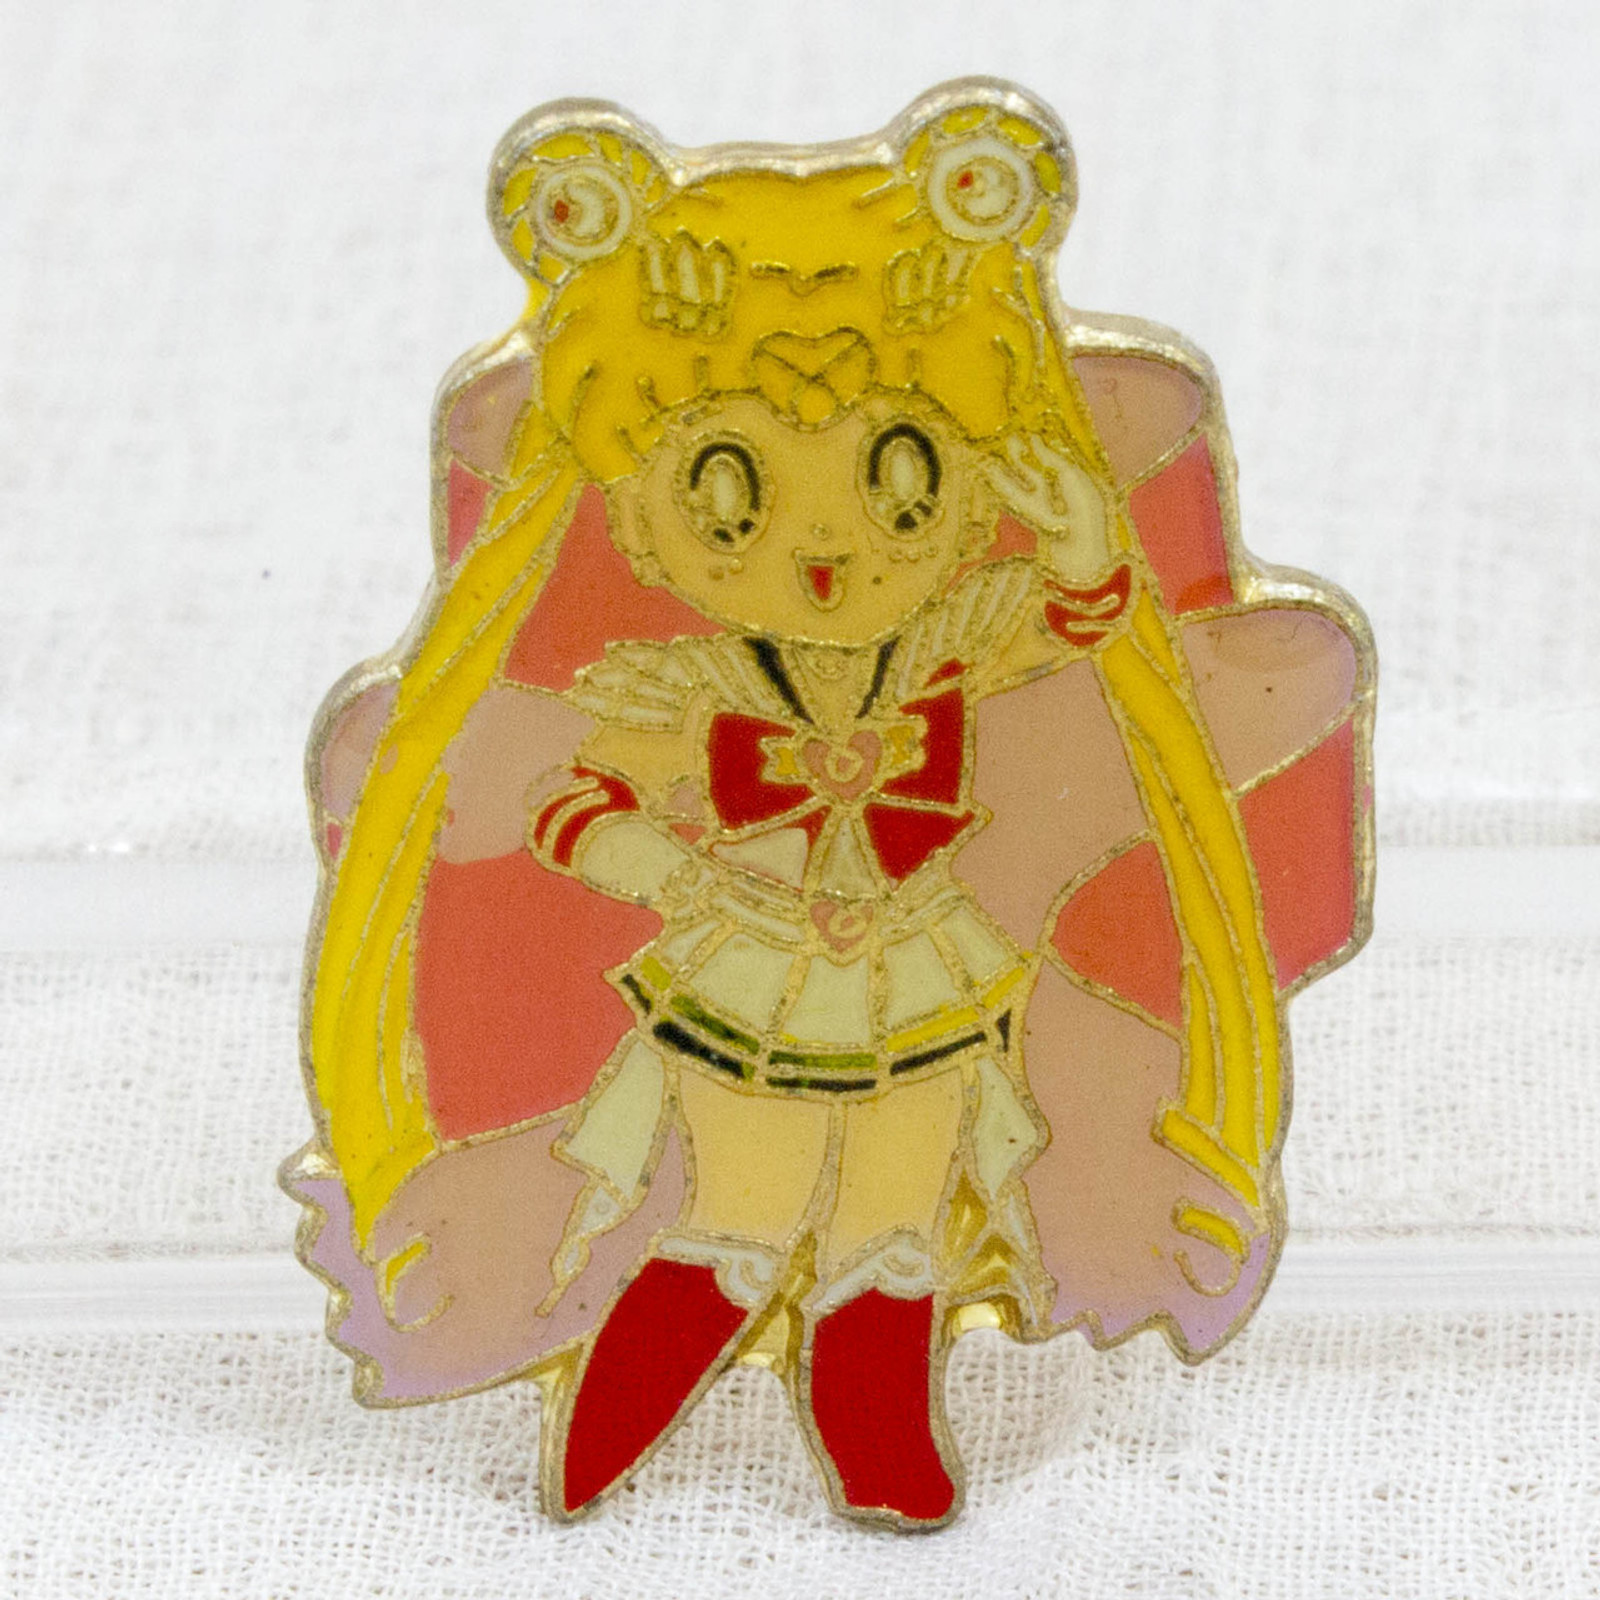 Sailor Moon Sailor Moon (Usagi Tsukino) Metal Pins Badge JAPAN ANIME MANGA 1